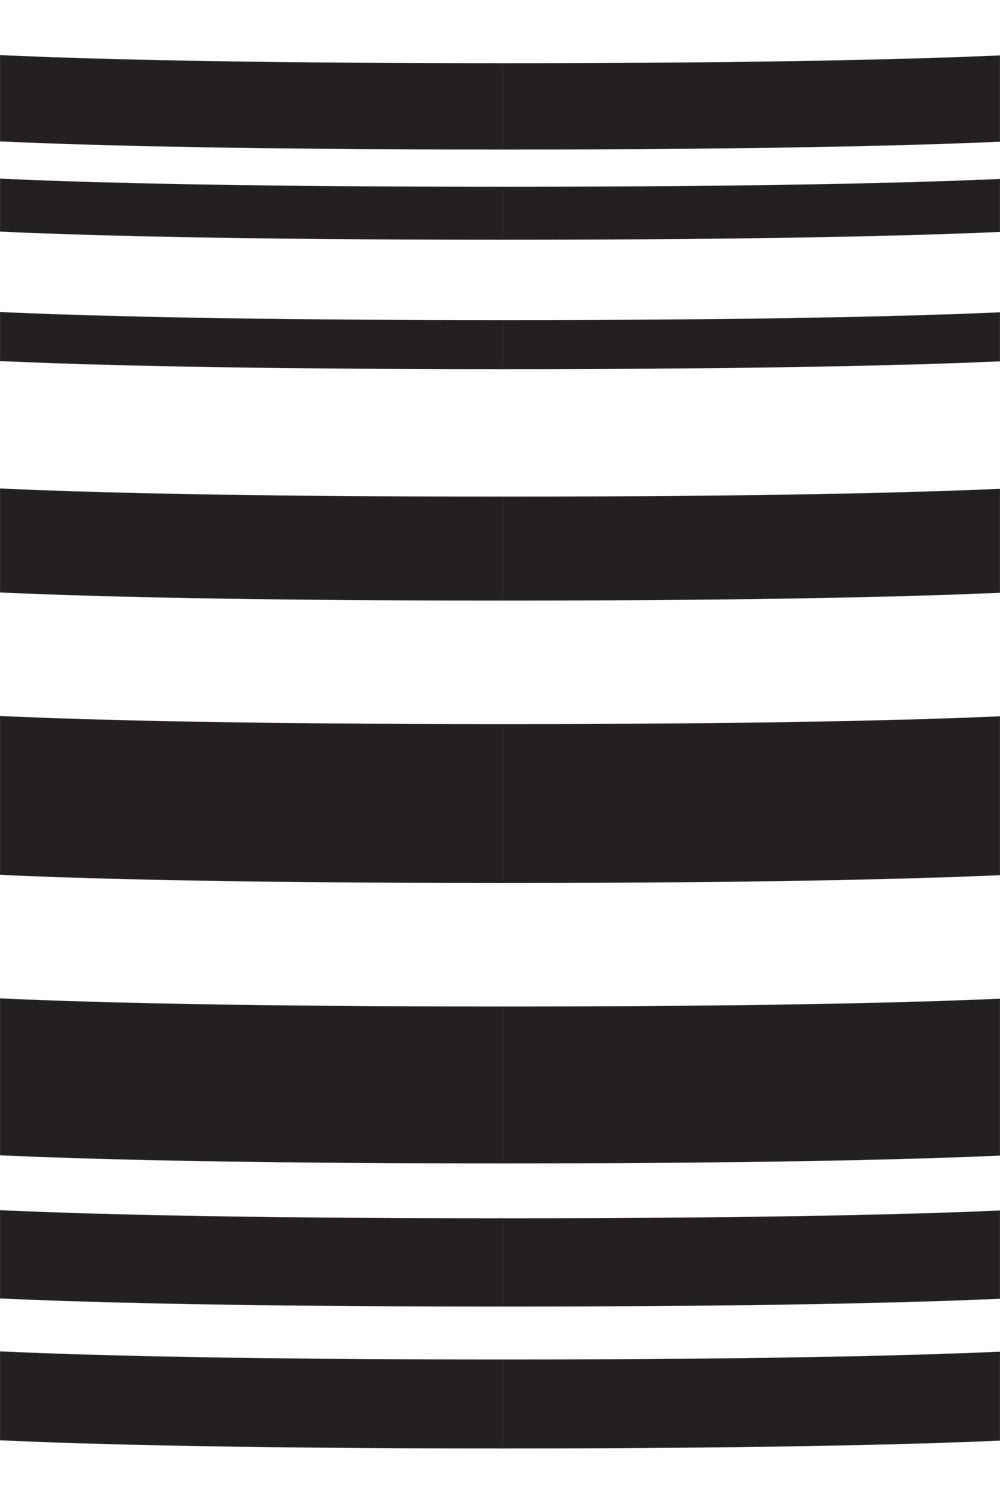 The School of Making Curved Variegated Stripe Stencil Striped Stencil Design for Hand-Painted DIY Sewing Projects